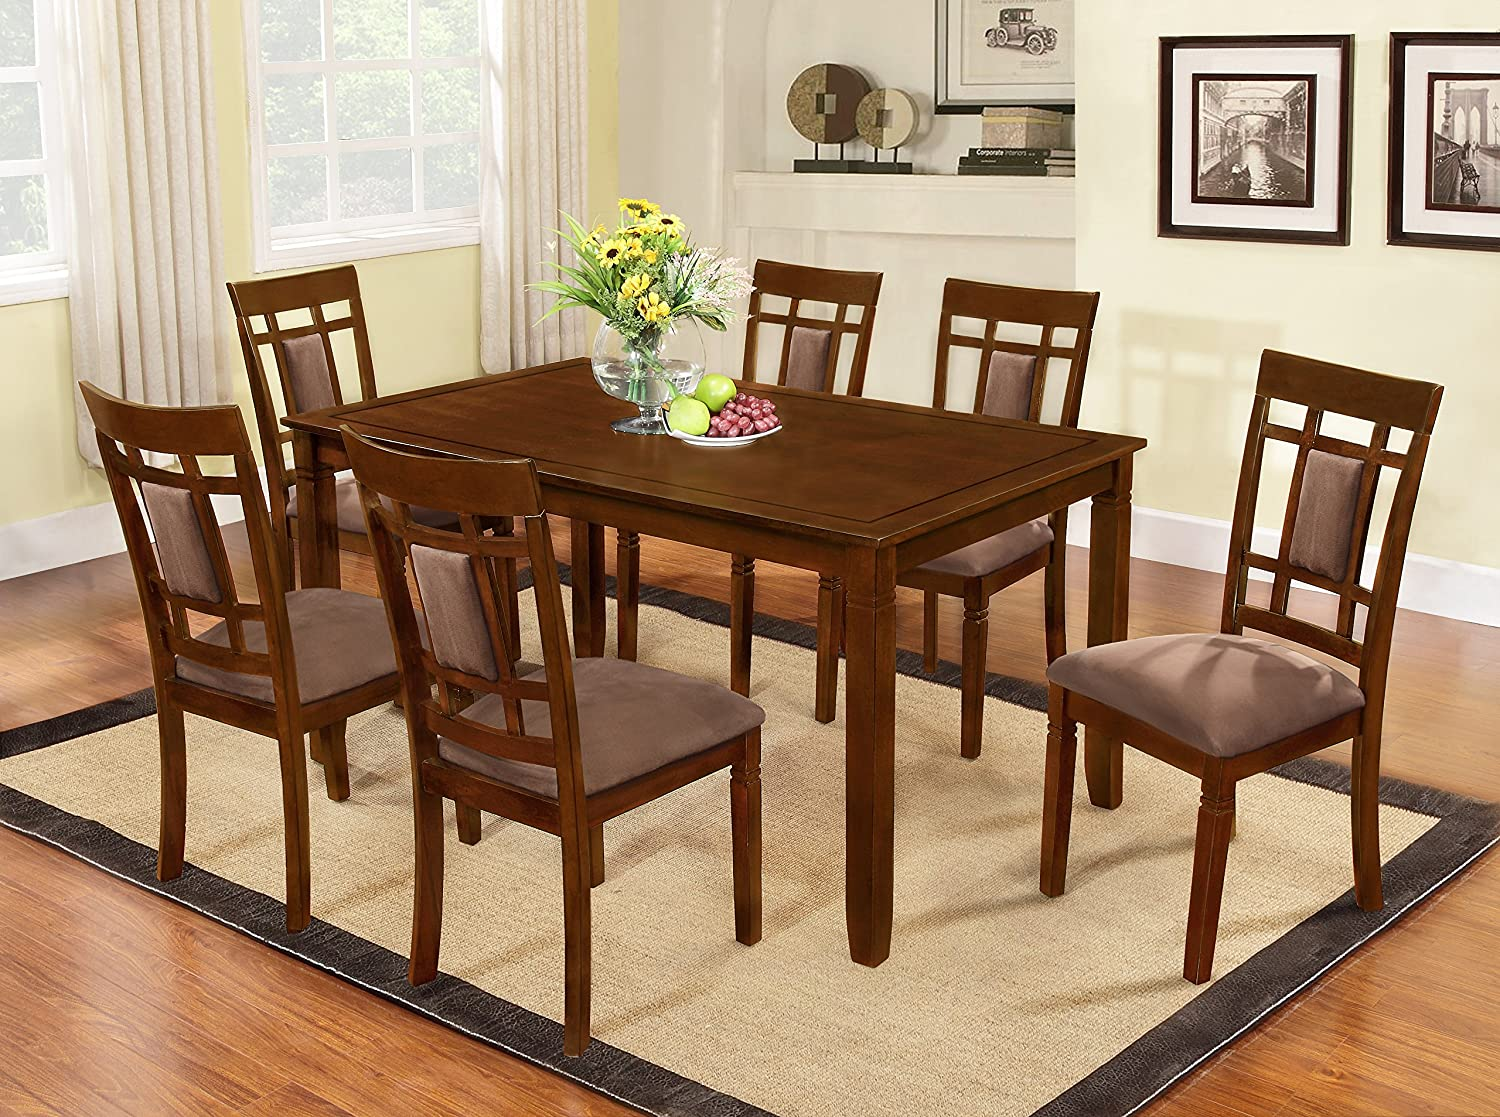 Amazon.com - The Room Style 7 piece Cherry Finish Solid Wood Dining Table Set - Table u0026 Chair Sets & Amazon.com - The Room Style 7 piece Cherry Finish Solid Wood Dining ...